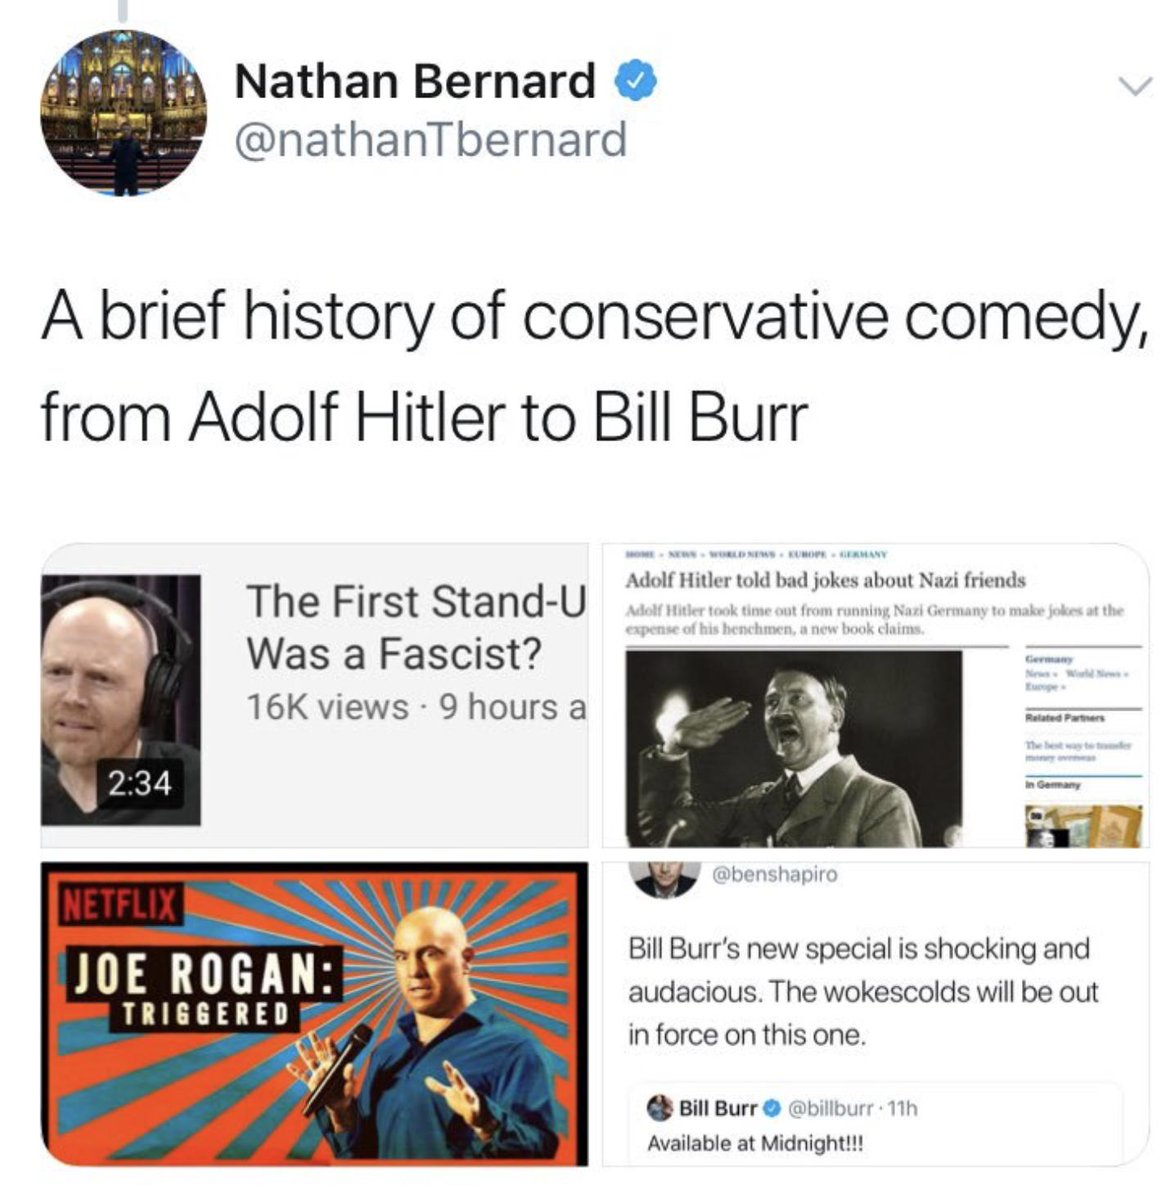 The Most Vocal Activists Are The Butt Of Popular Comedy, And It's Freaking Them Out